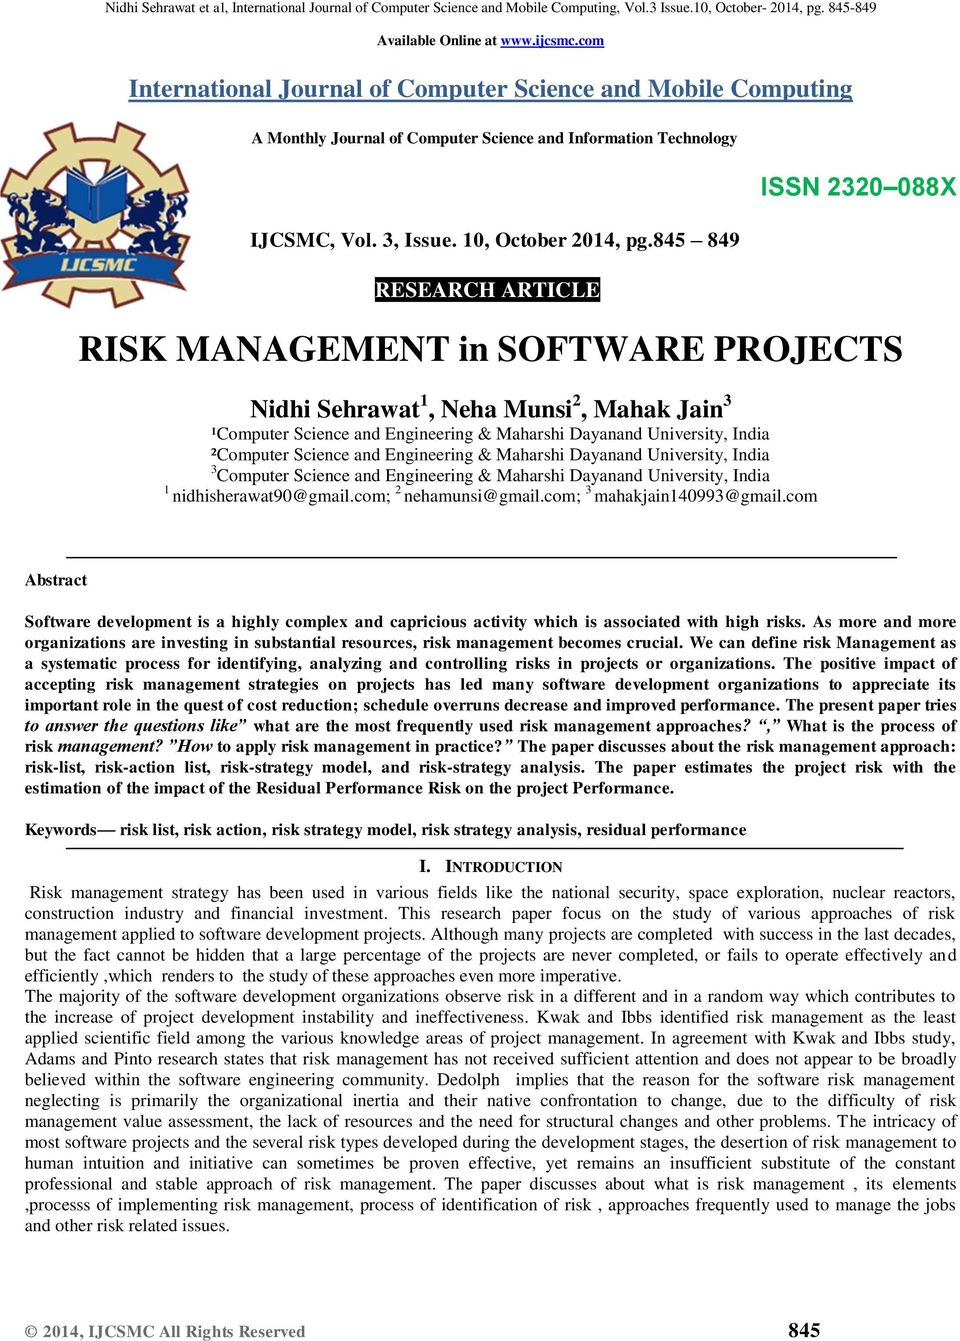 845 849 RESEARCH ARTICLE ISSN 2320 088X RISK MANAGEMENT in SOFTWARE PROJECTS Nidhi Sehrawat 1, Neha Munsi 2, Mahak Jain 3 ¹Computer Science and Engineering & Maharshi Dayanand University, India